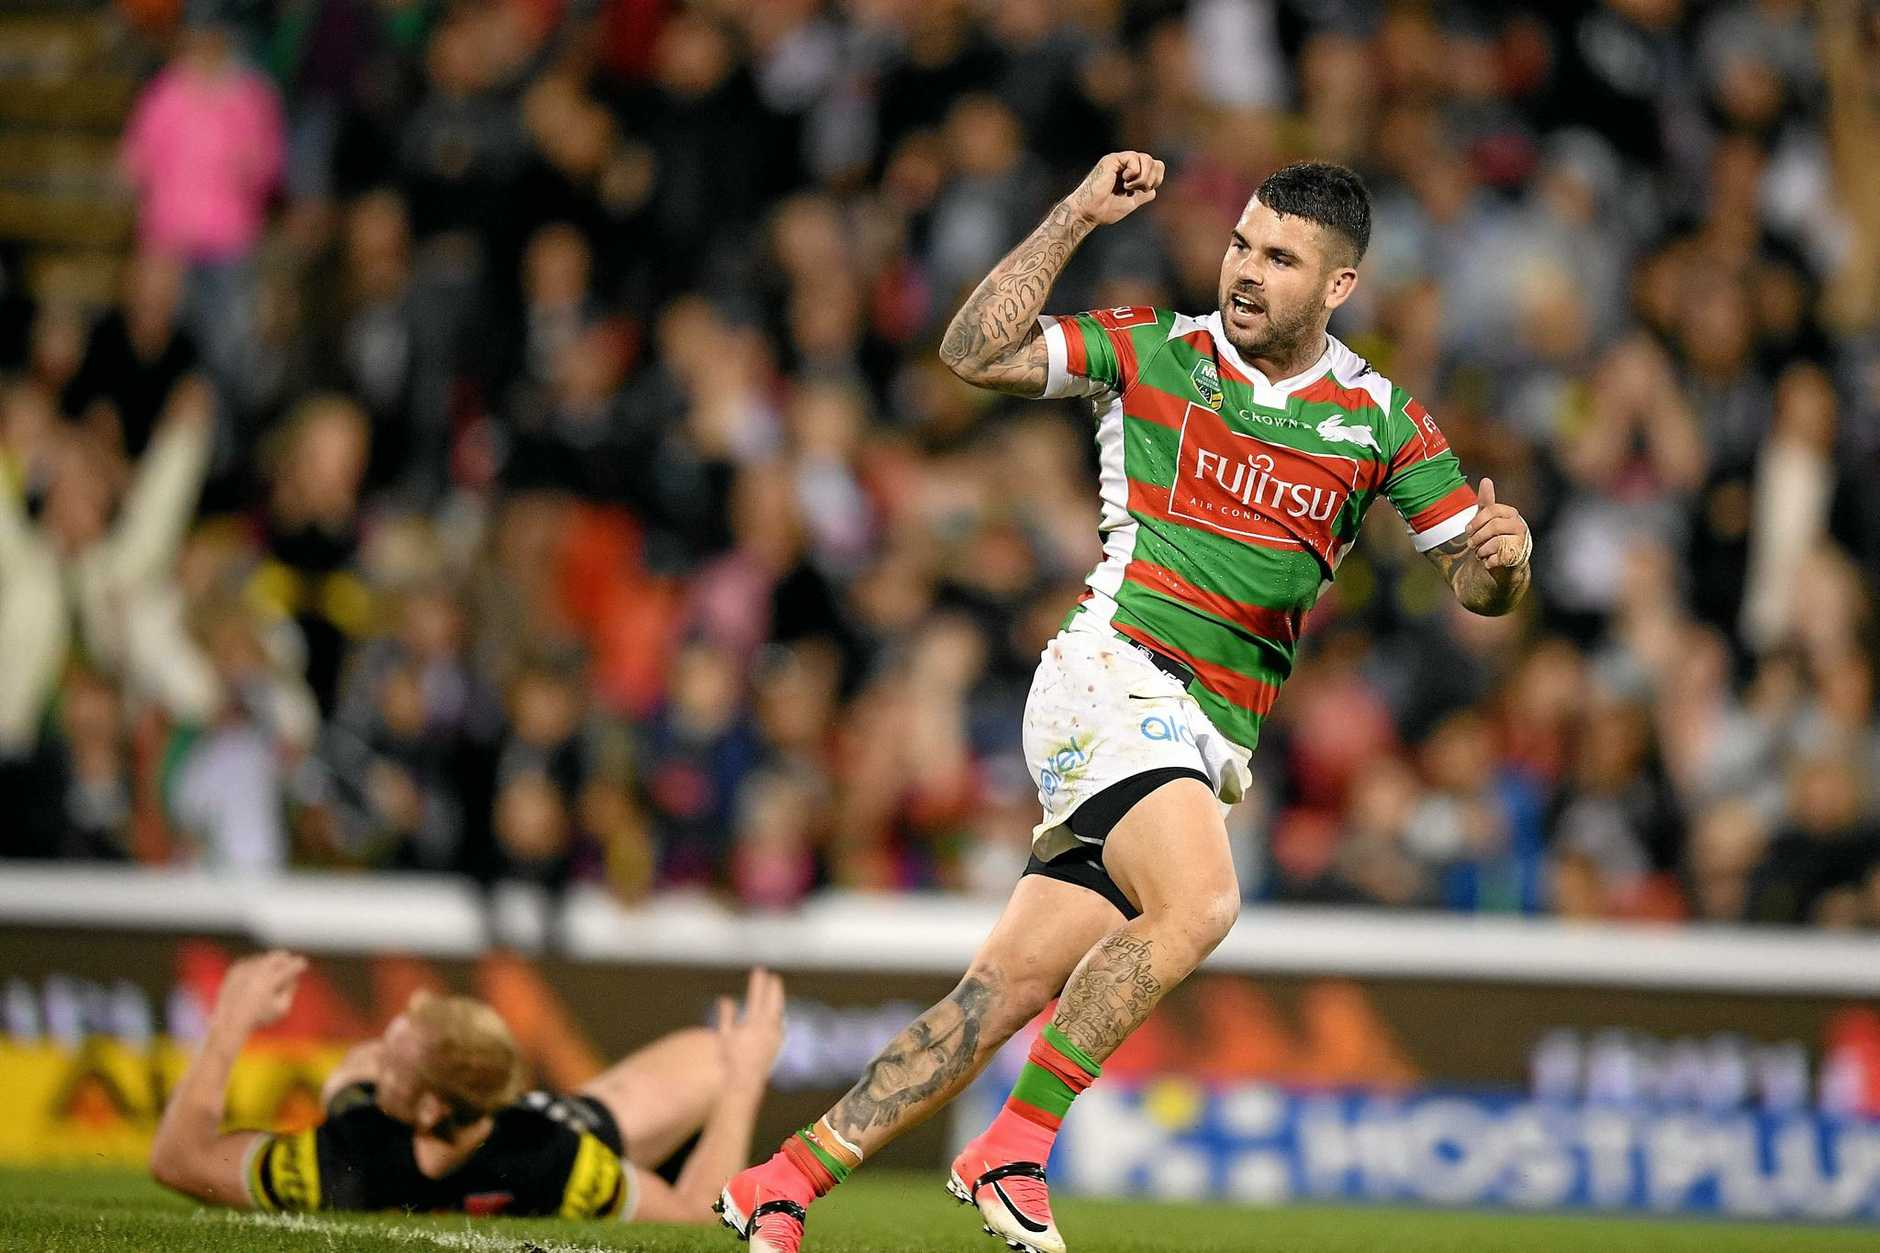 Adam Reynolds of the Rabbitohs reacts after kicking a field goal to win the game against the Panthers.